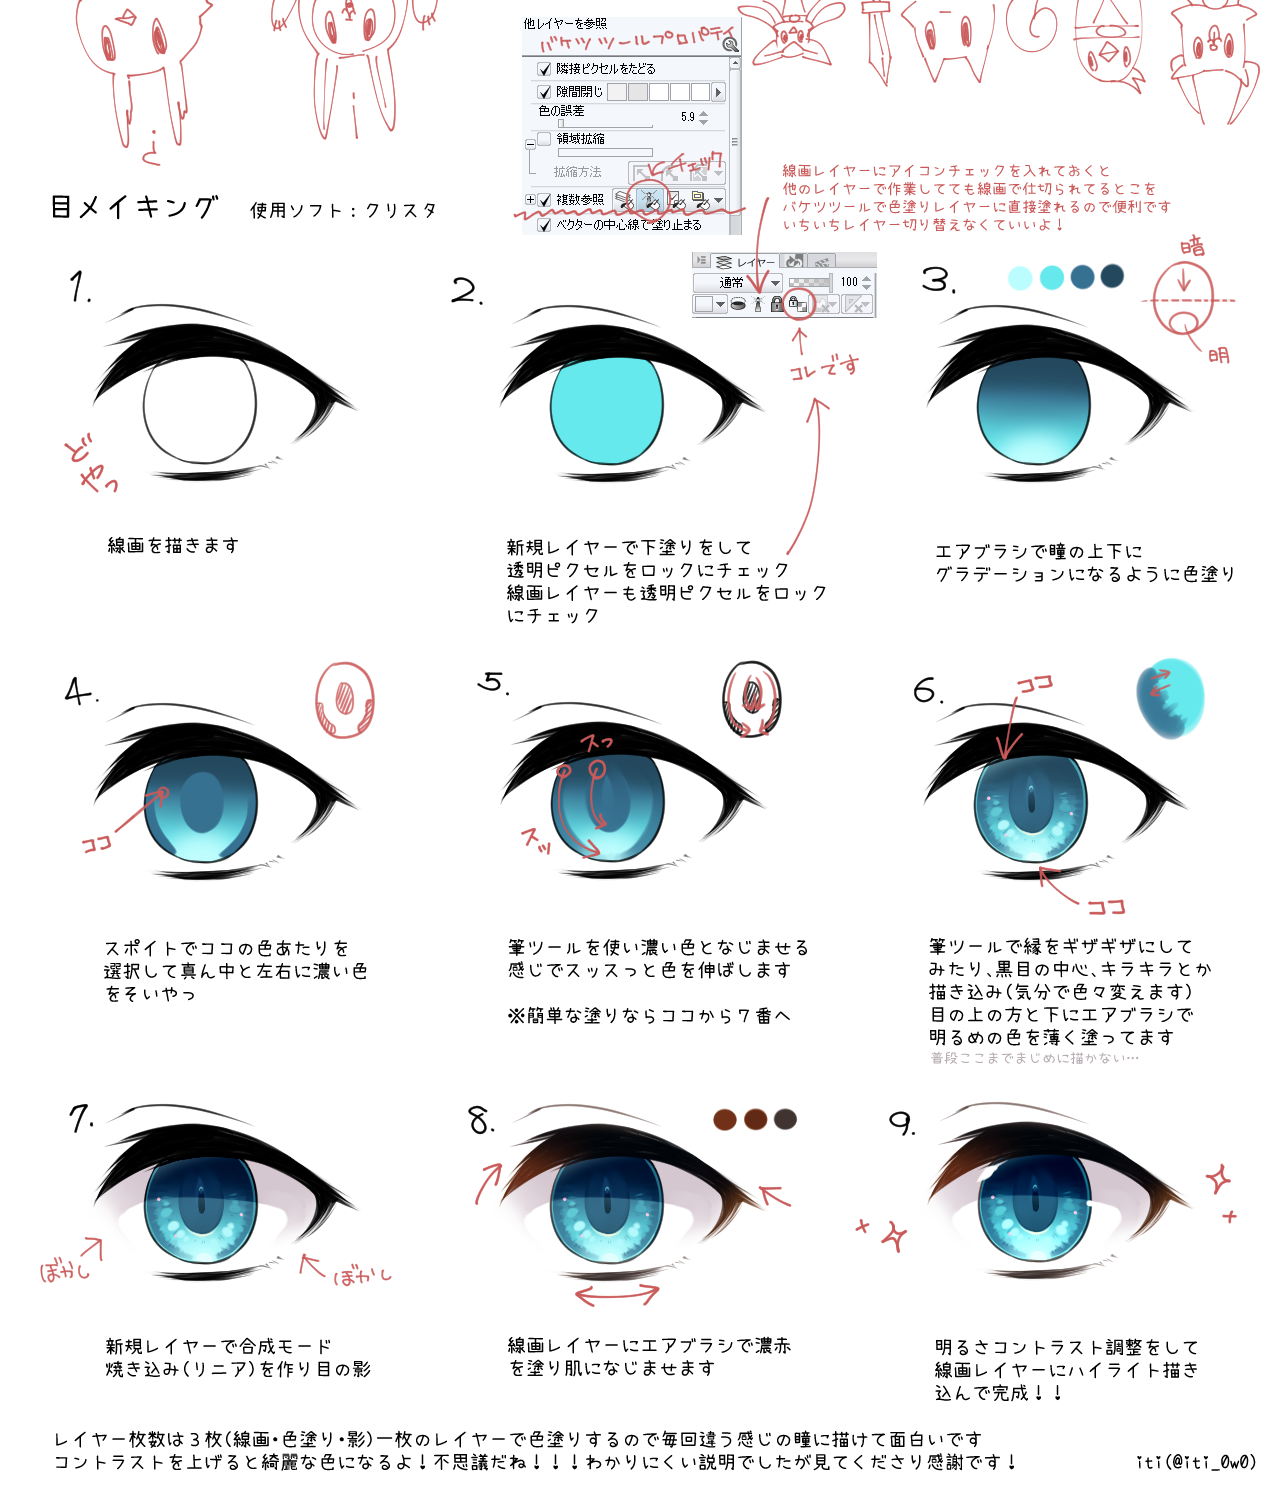 Anime Eyes Eye Drawing Tutorials Digital Painting Tutorials Anime Eyes